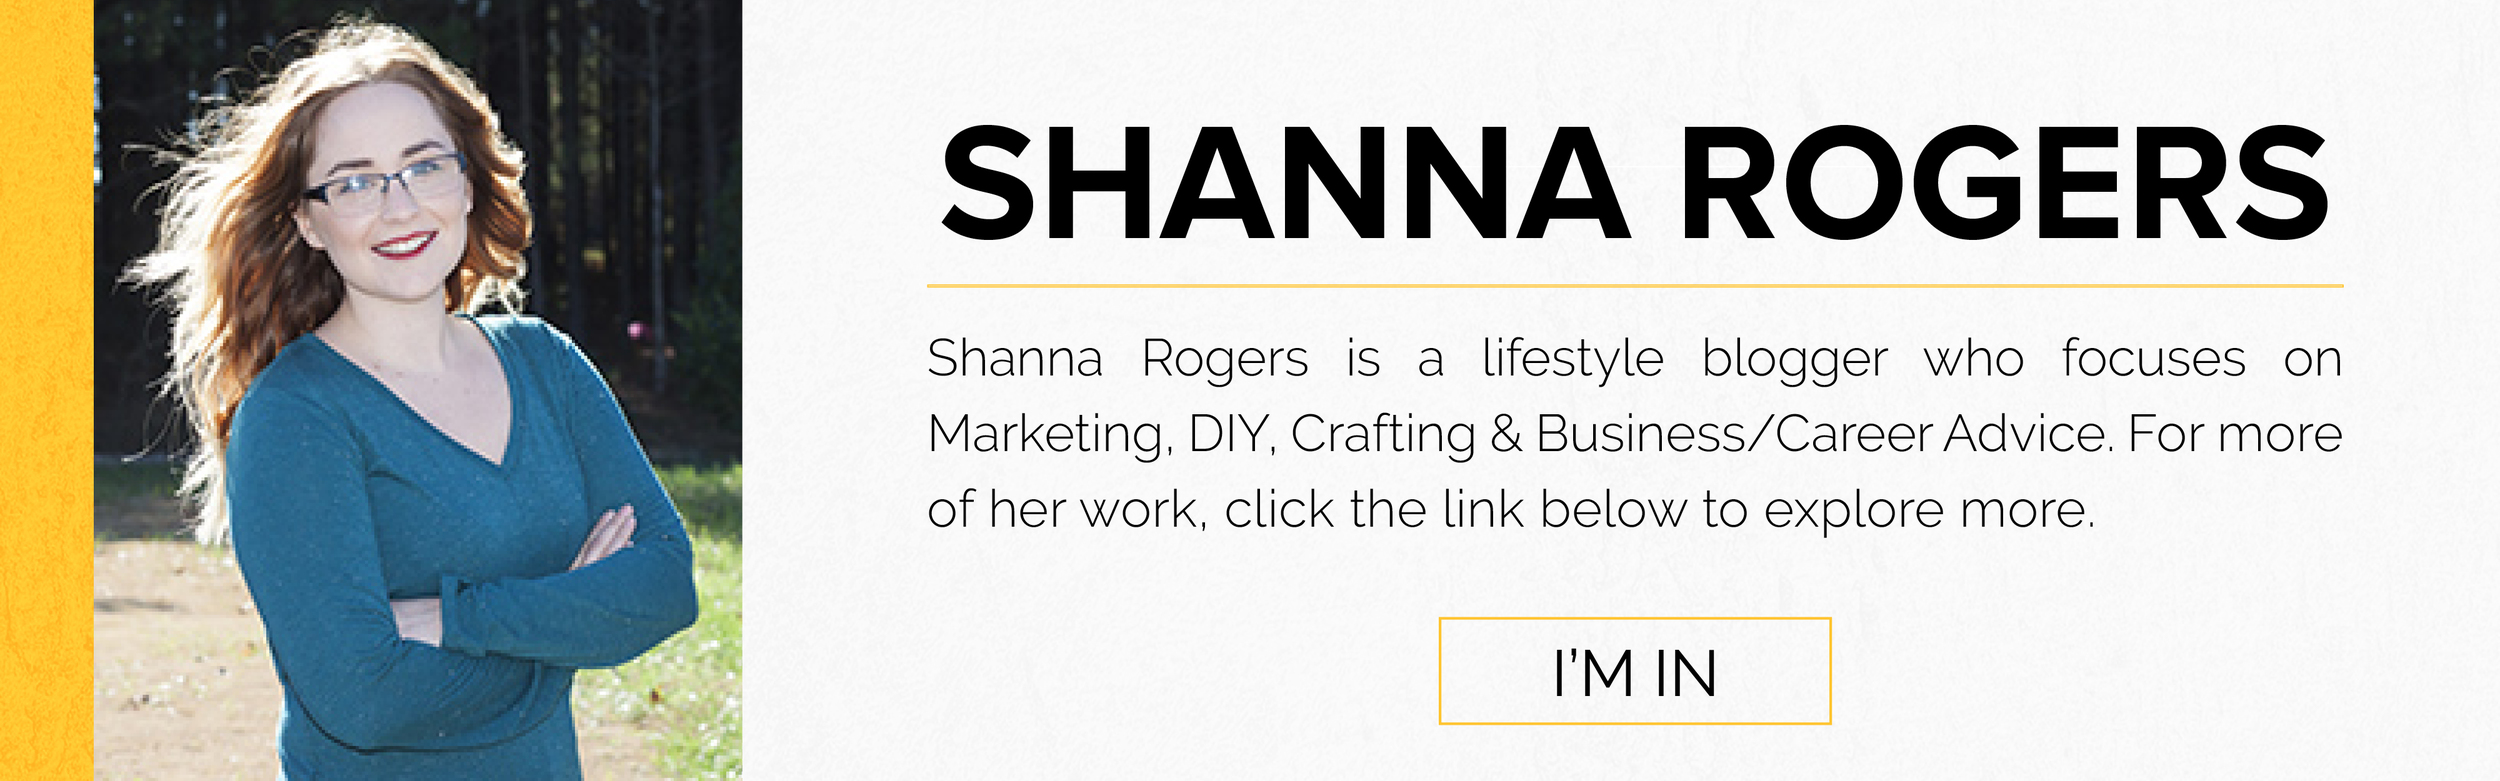 Shanna Rogers is a lifestyle blogger who focuses on Marketing, DIY, Crafting & Business/Career Advice.